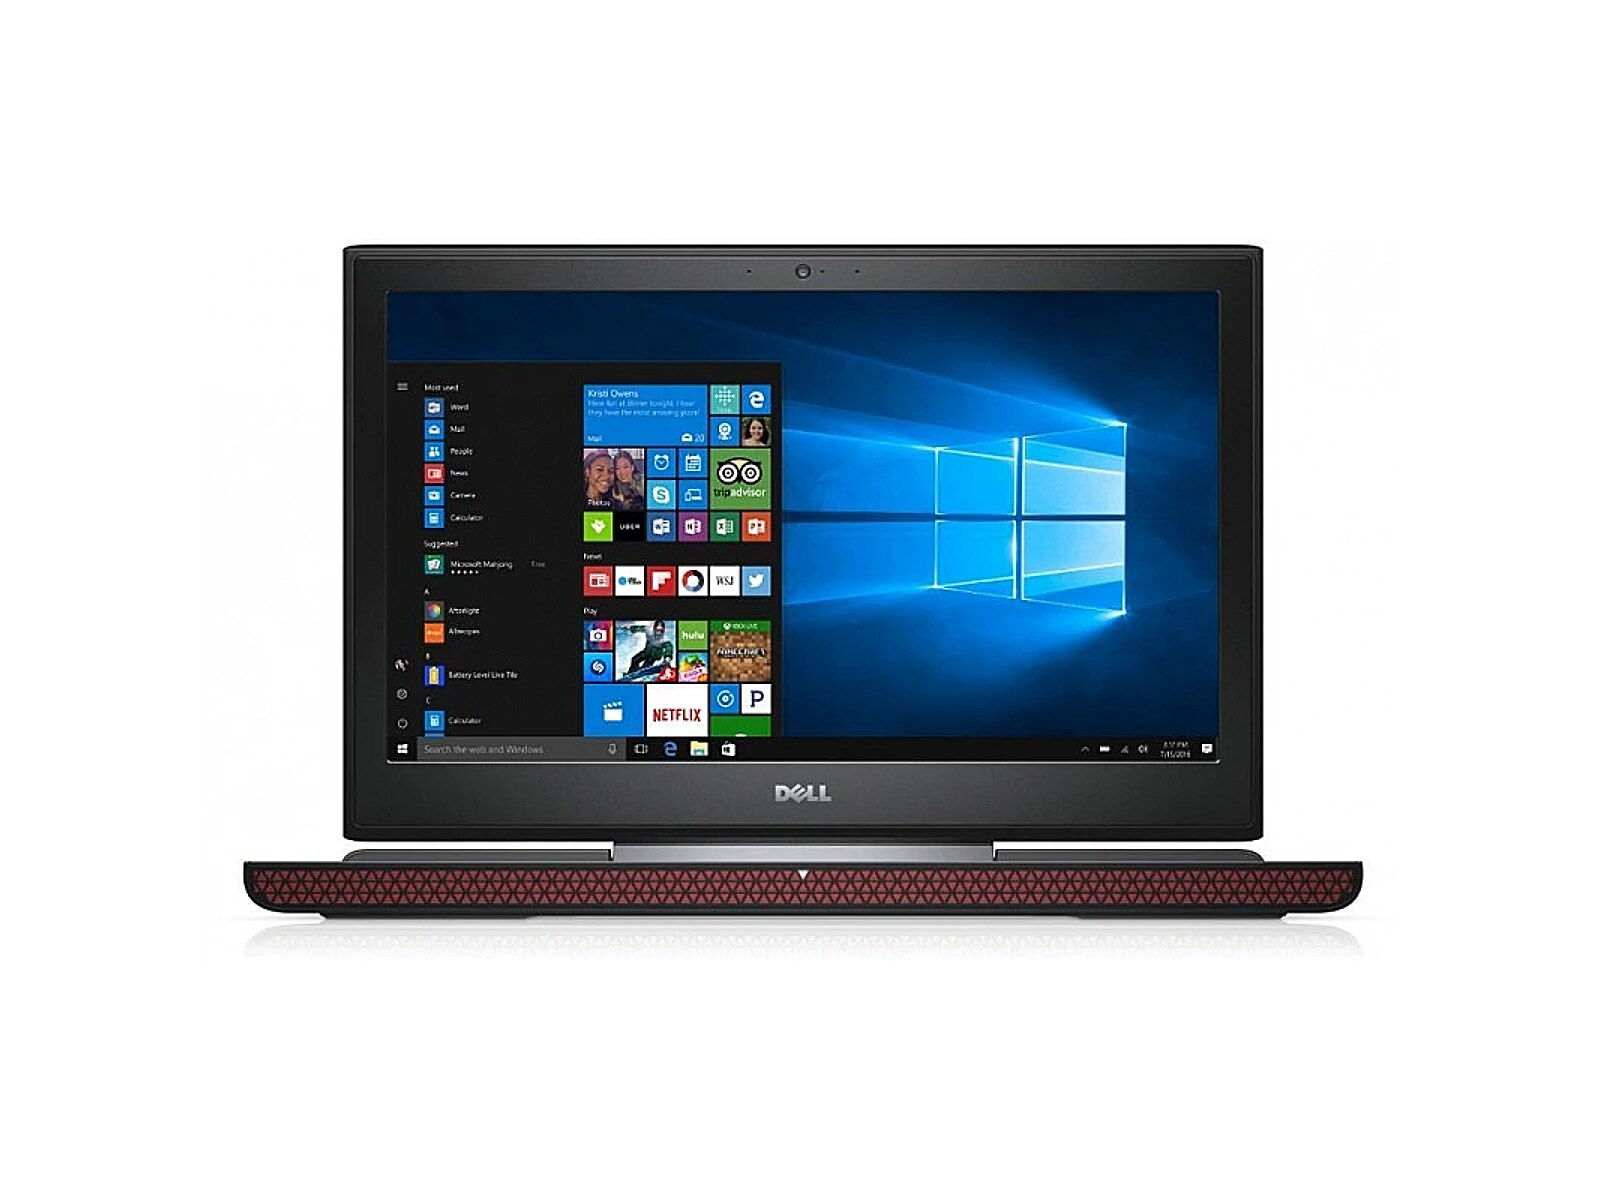 Dell Inspiron 15 (7567) Black, 15.6